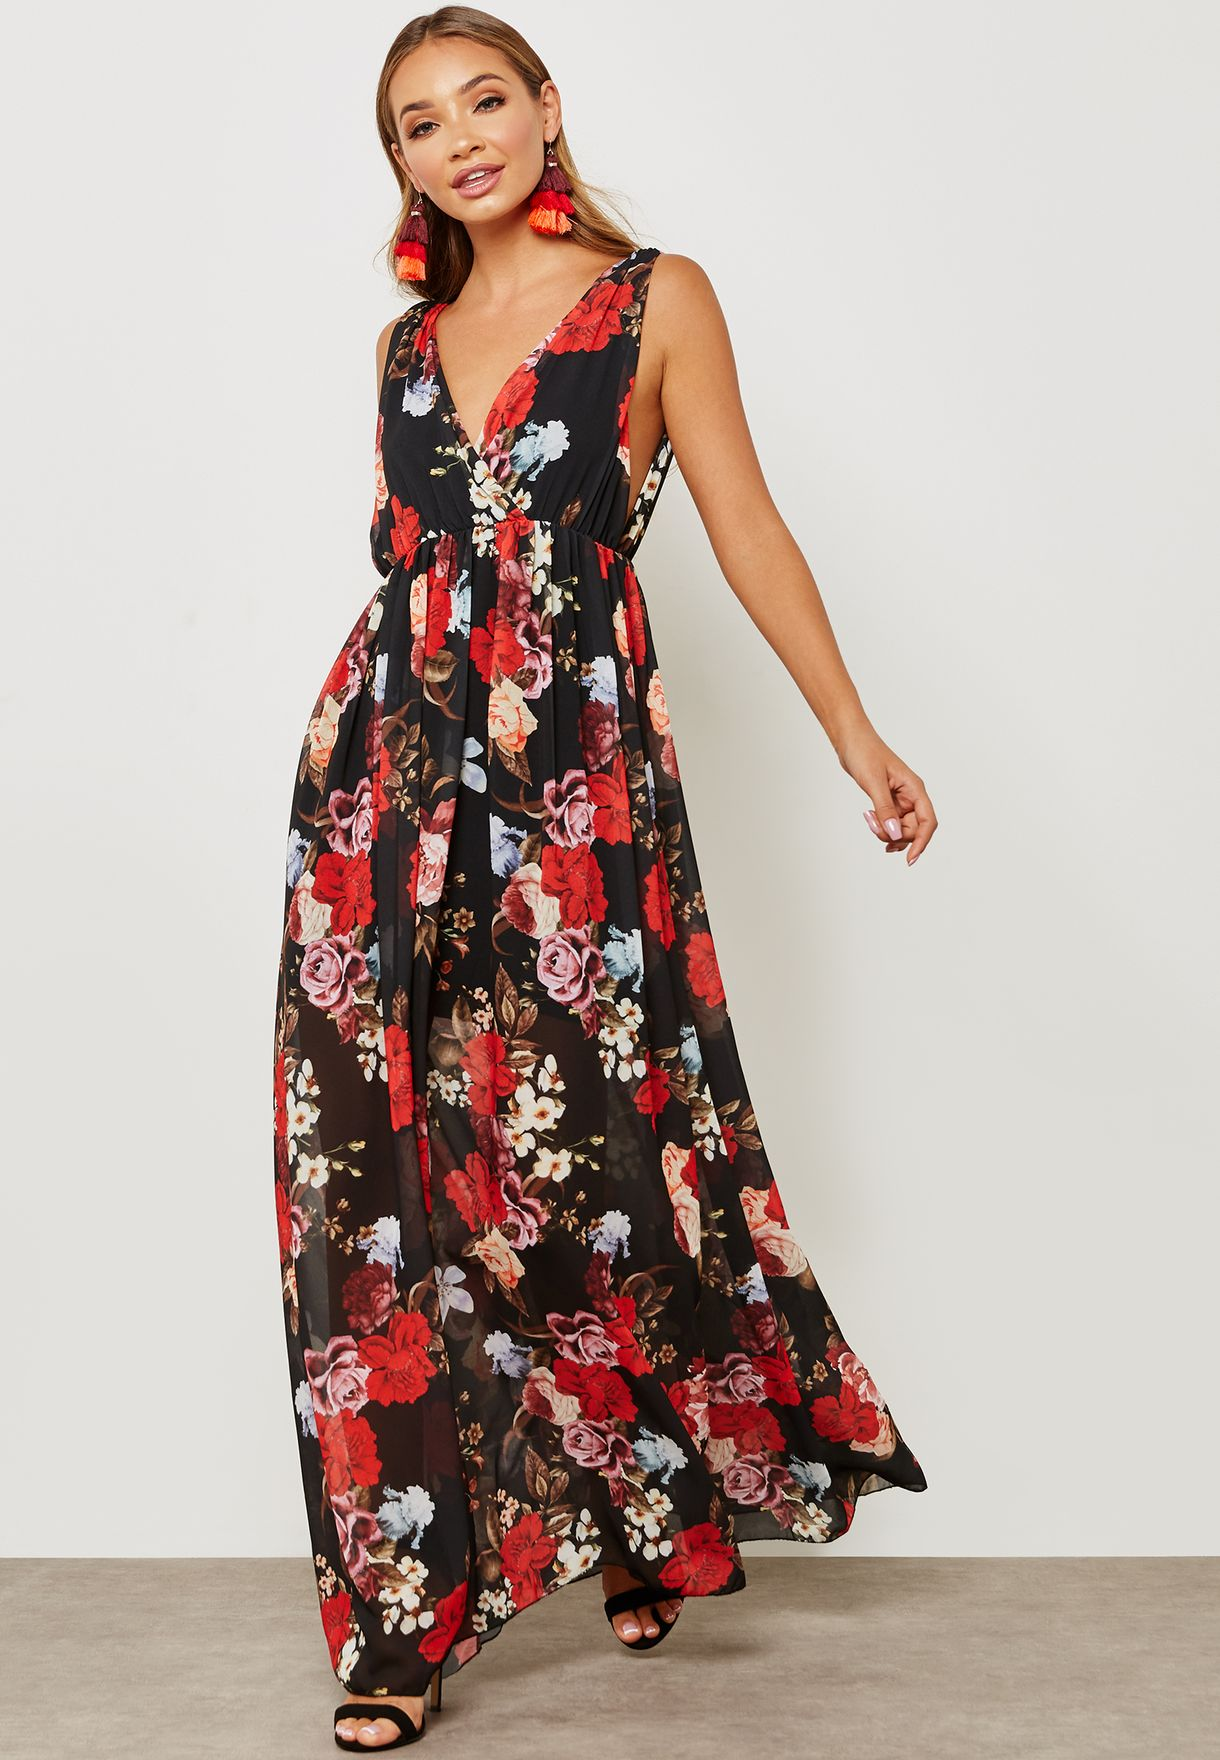 e91302f14e Shop Ginger prints Floral Print Plunge Neck Maxi Dress KL 7369 for Women in  Qatar - GI121AT14DIB